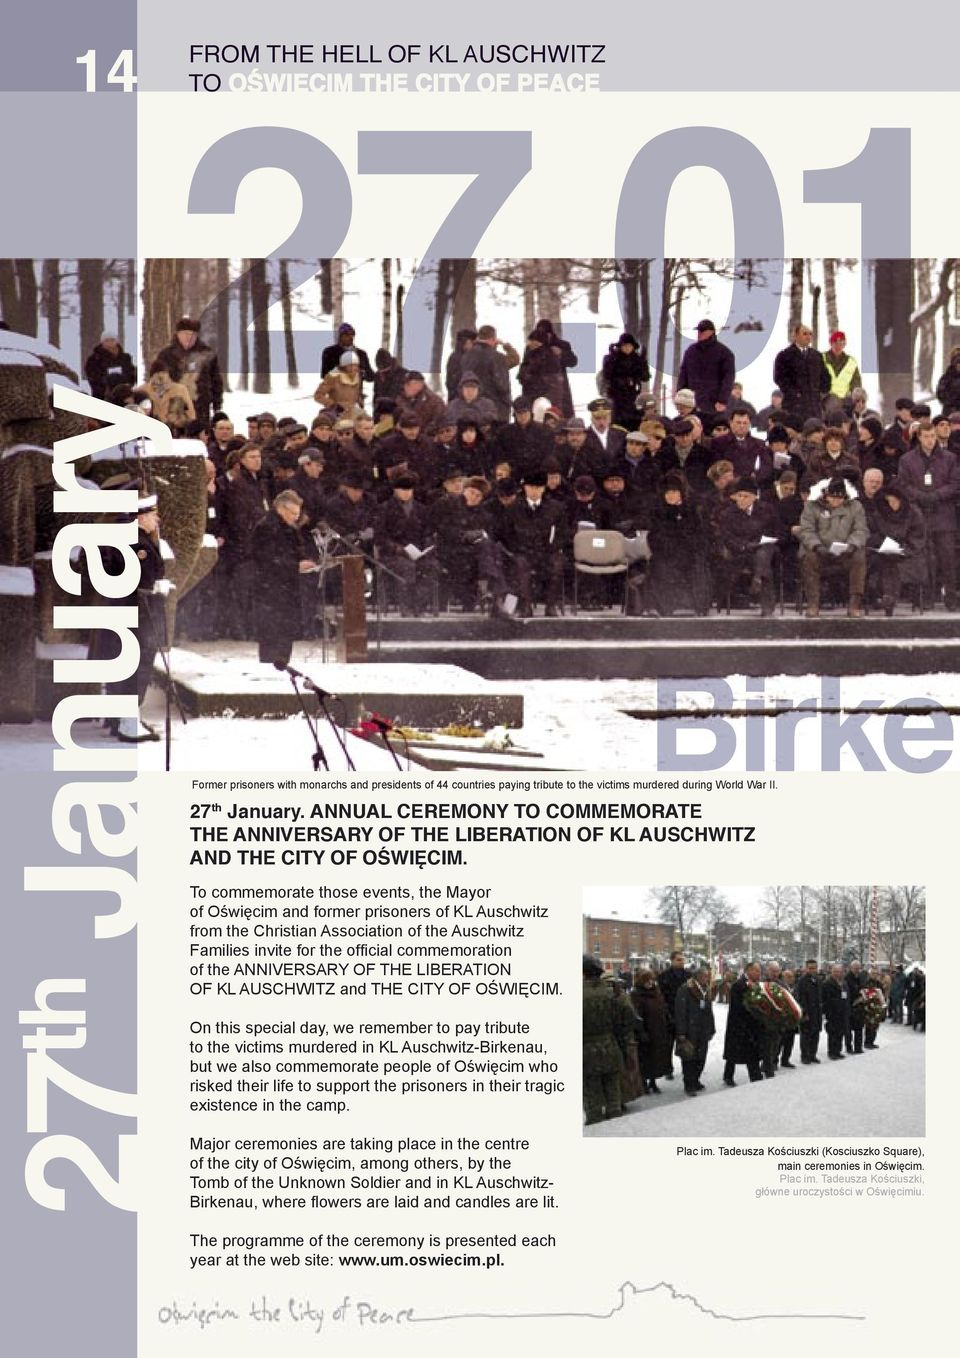 ANNUAL CEREMONY TO COMMEMORATE THE ANNIVERSARY OF THE LIBERATION OF KL AUSCHWITZ AND THE CITY OF OŚWIĘCIM.